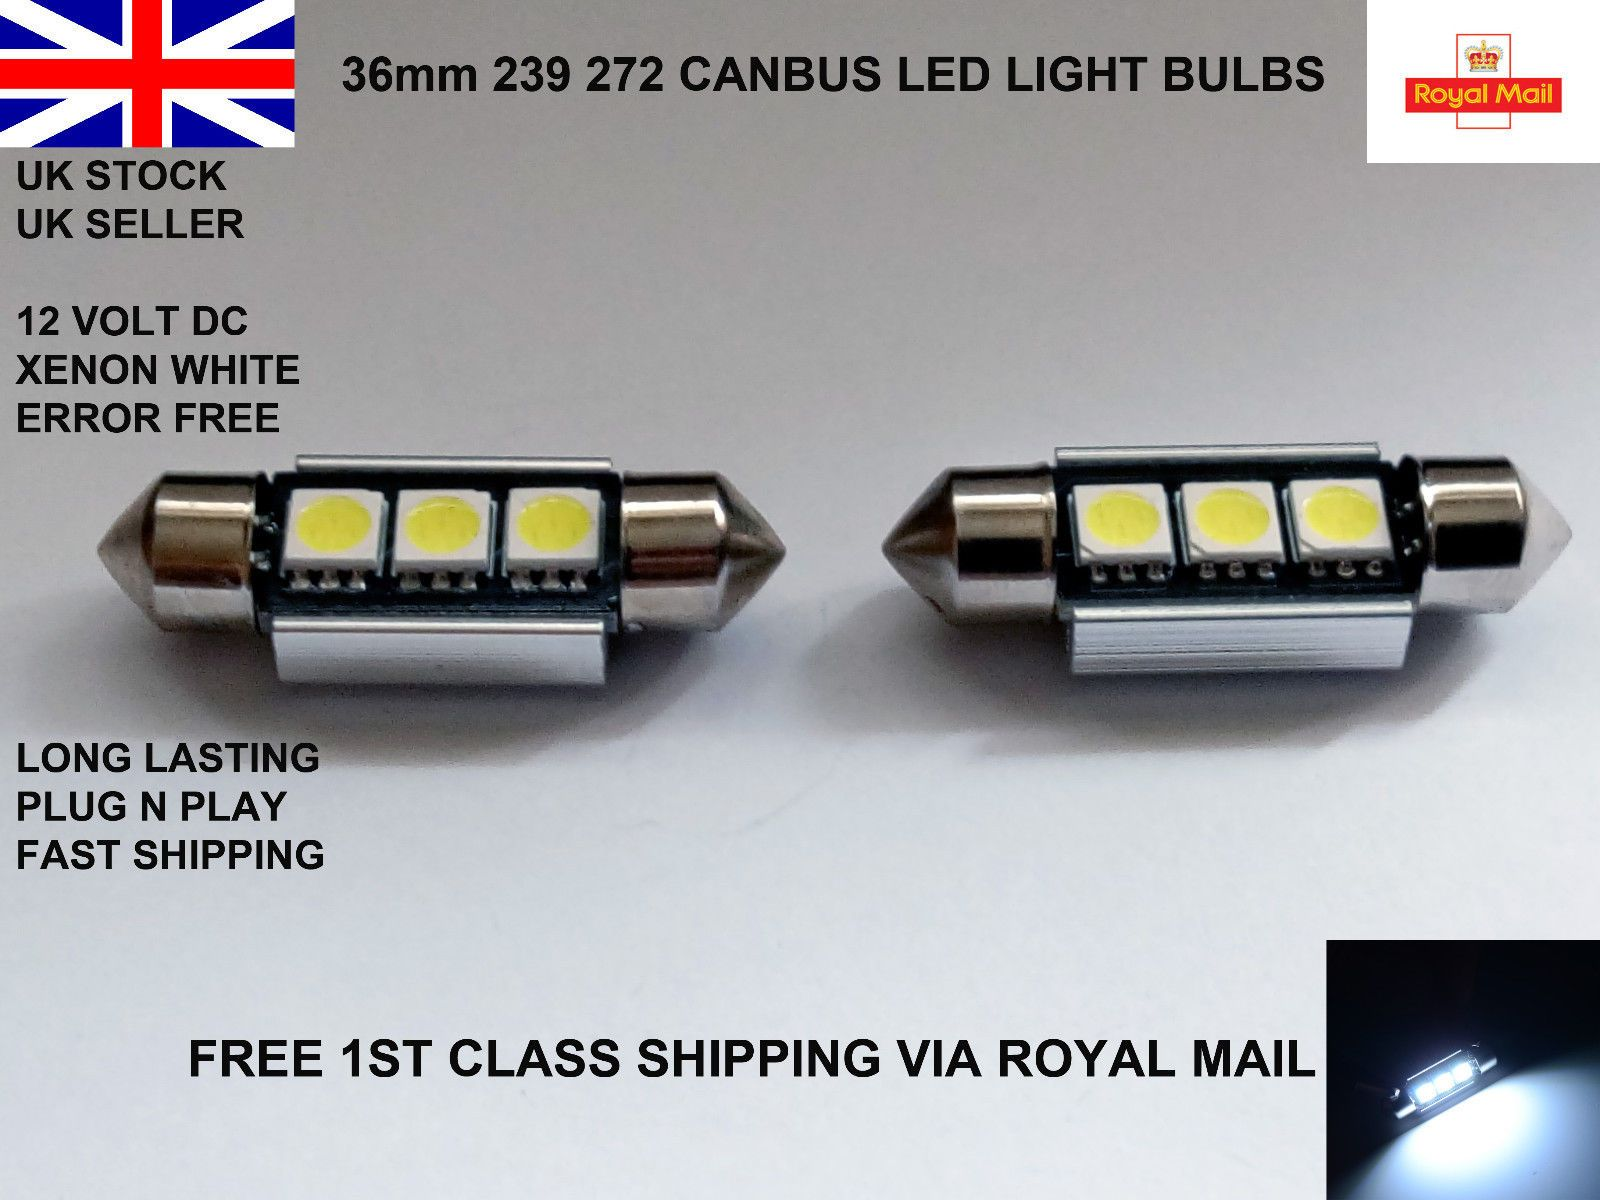 2 X 36mm Festoon 3 Led Smd Number Plate Light Bulbs Lamps Canbus Error Free 12v Light Bulb Lamp Roof Light Number Plate